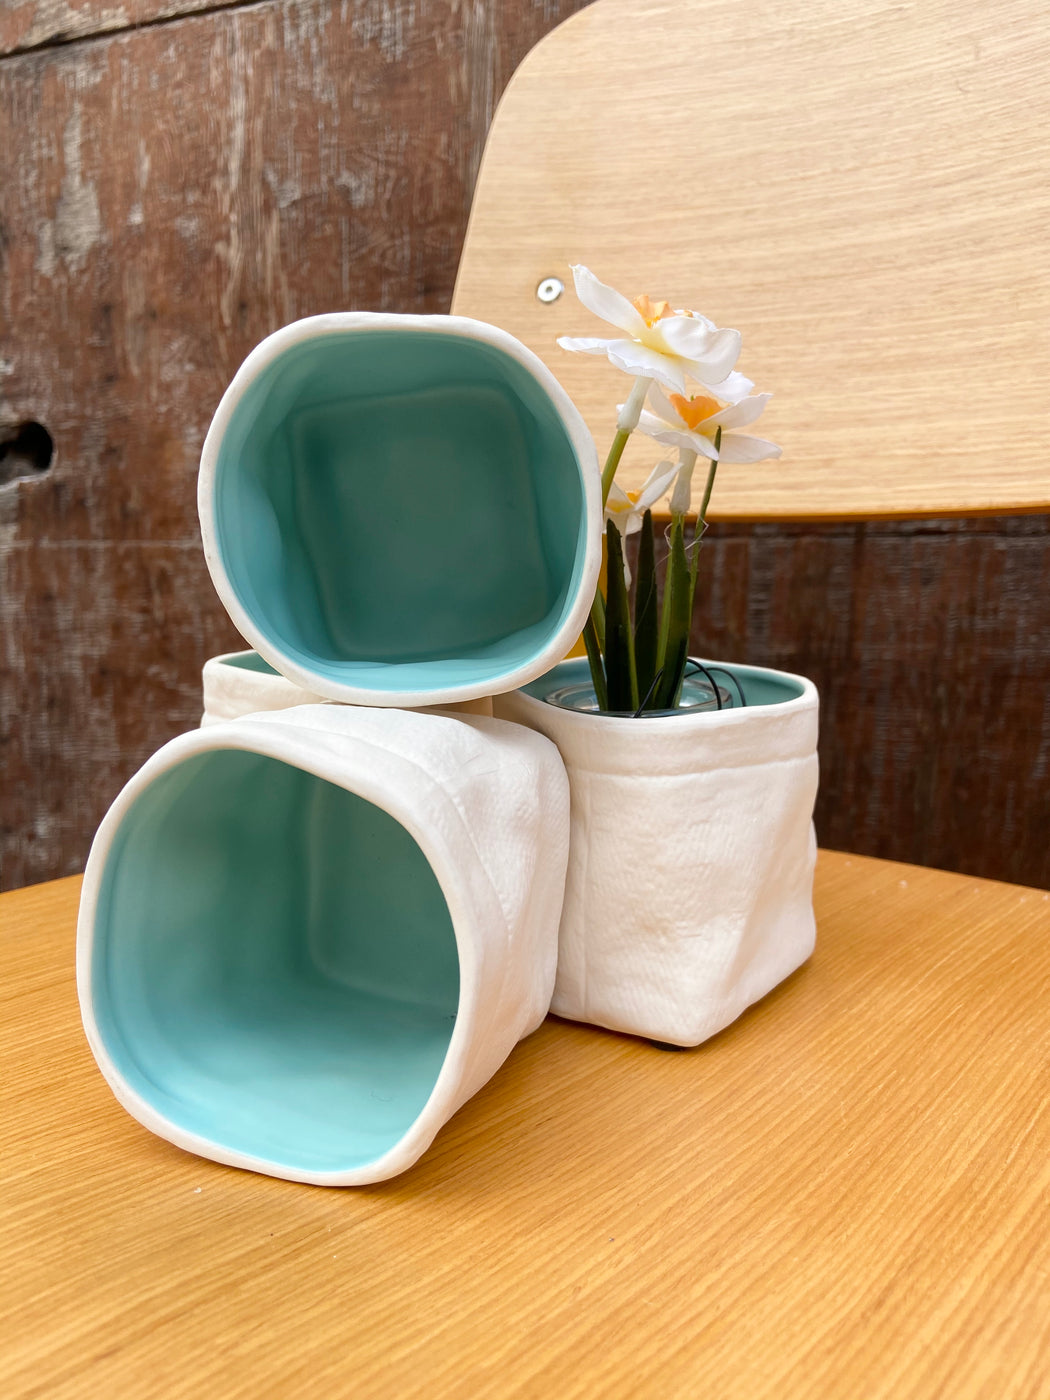 Container that looks like a bag but is made of ceramic! Off-white outside with aqua inside.